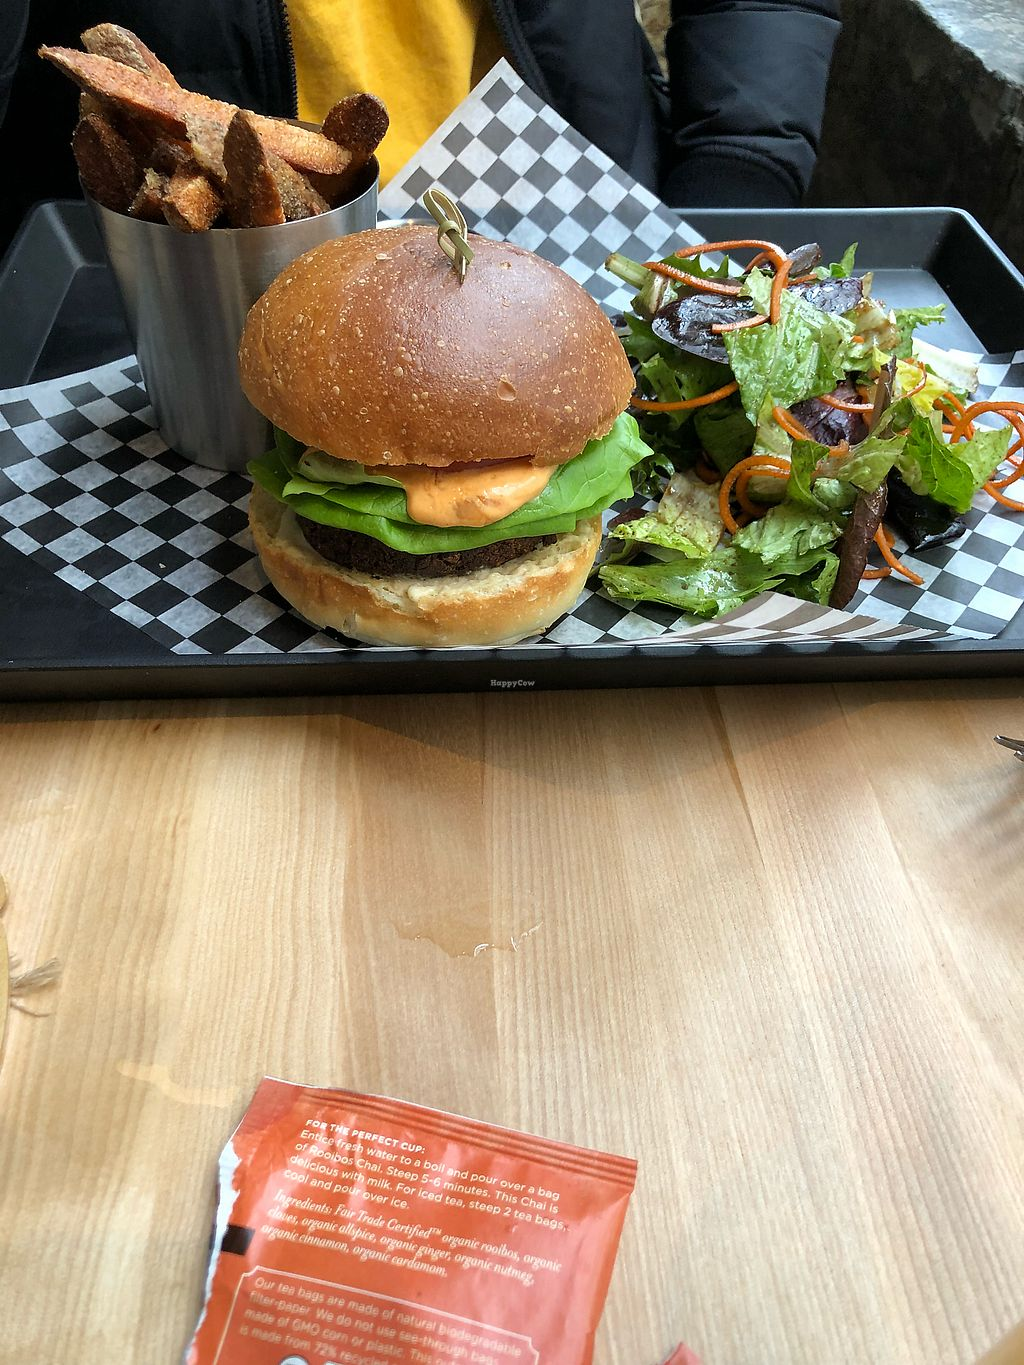 """Photo of Invitation V Vegan Bistro  by <a href=""""/members/profile/KaitlynnGill"""">KaitlynnGill</a> <br/>Chickpea burger  <br/> February 27, 2018  - <a href='/contact/abuse/image/38634/364652'>Report</a>"""